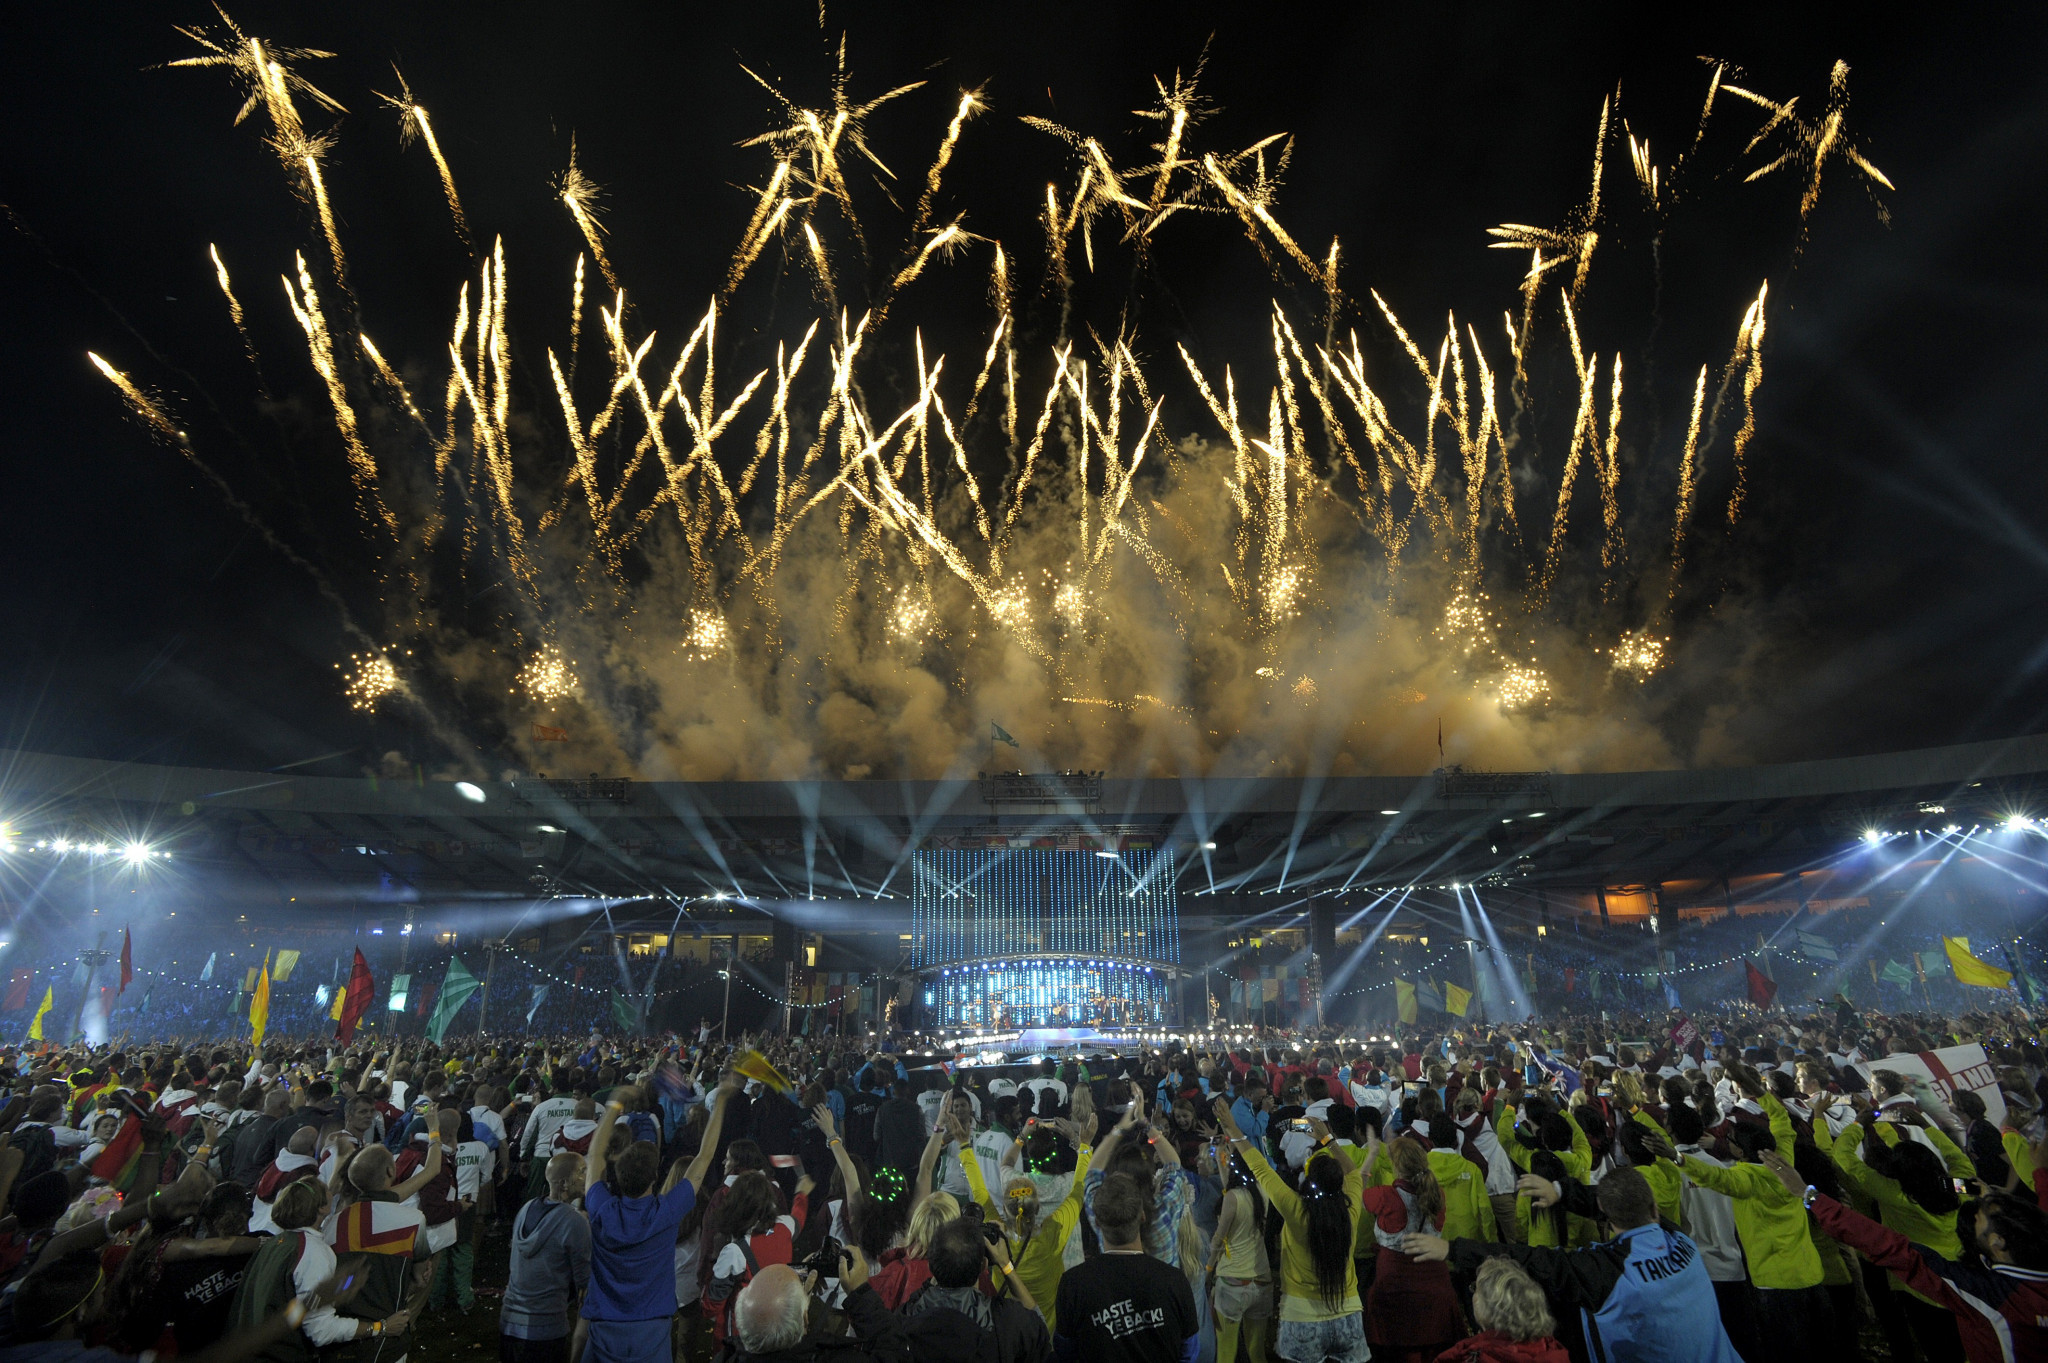 GL Events and Field & Lawn provided services for the Glasgow 2014 Commonwealth Games ©Getty Images